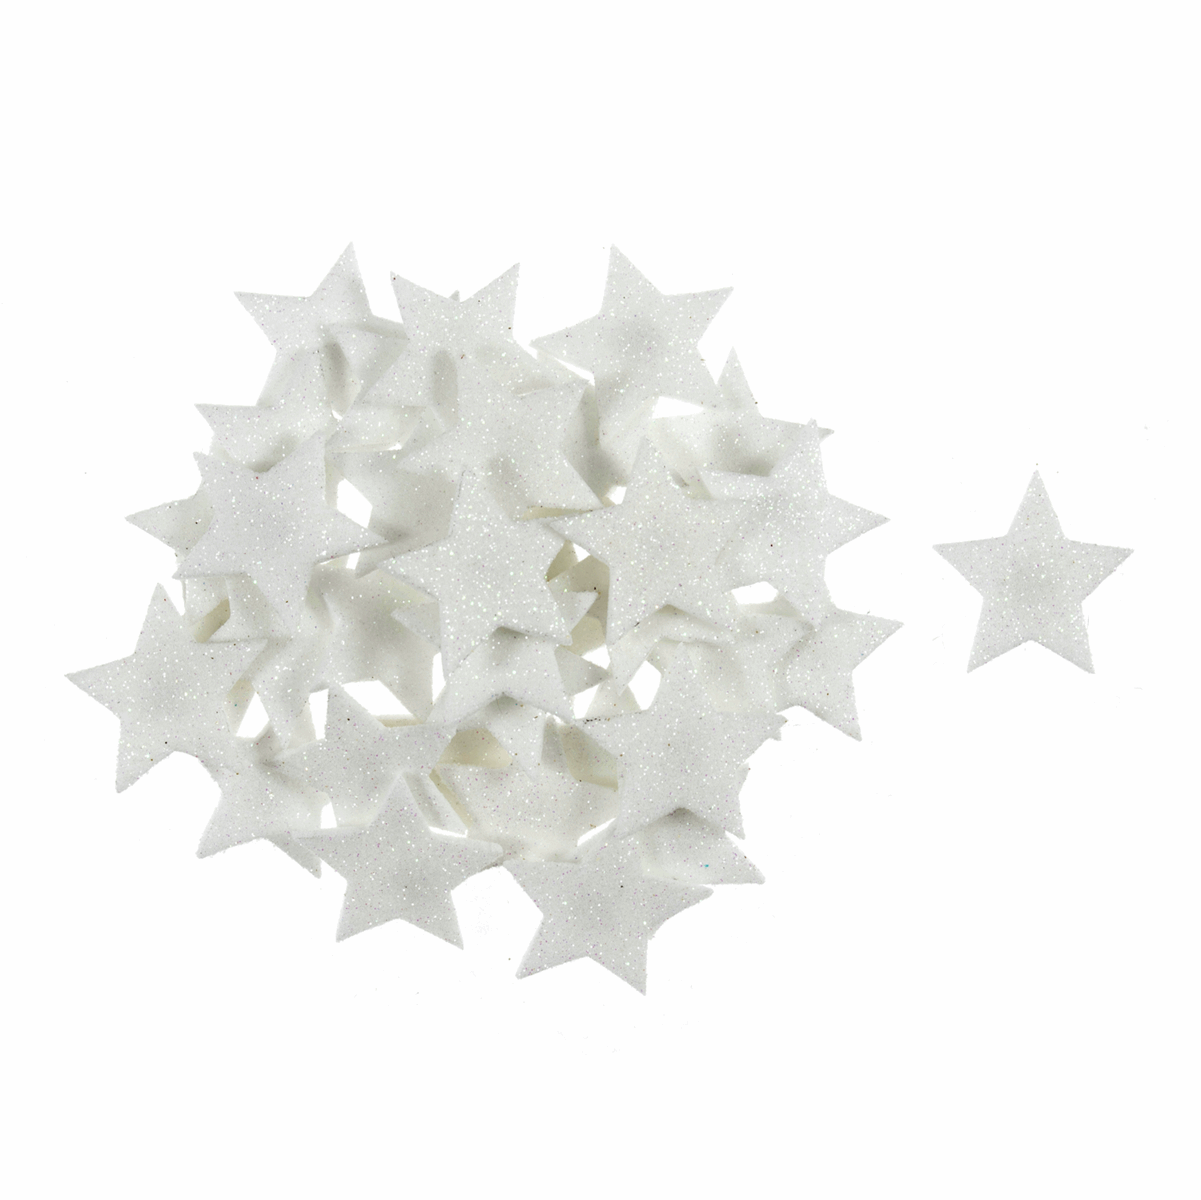 Picture of Craft Embellishments: Glitter Stars: White: 35 Pieces